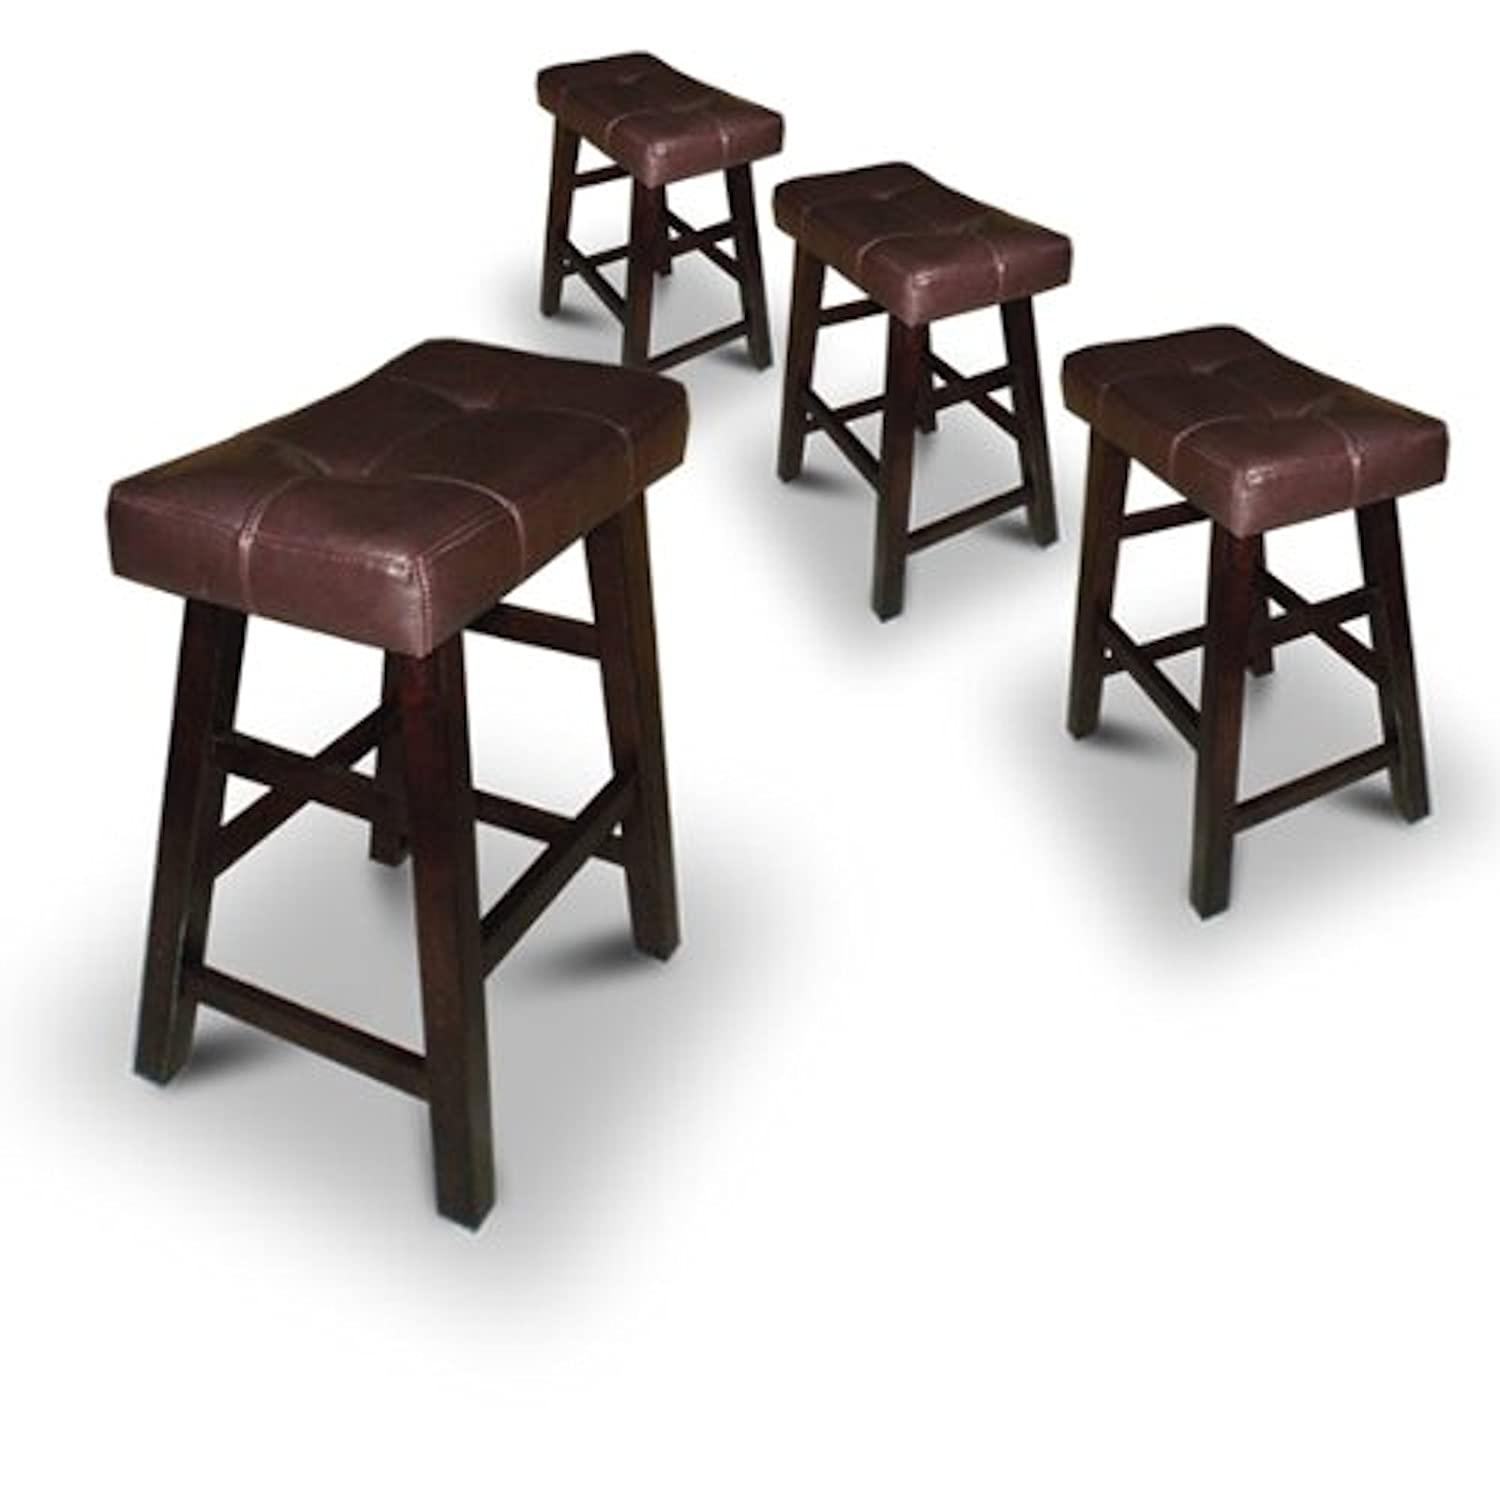 Amazon.com 4 29  Dark Espresso Wood Bar Stools with Bonded Faux Leather Seat Kitchen u0026 Dining  sc 1 st  Amazon.com & Amazon.com: 4 29